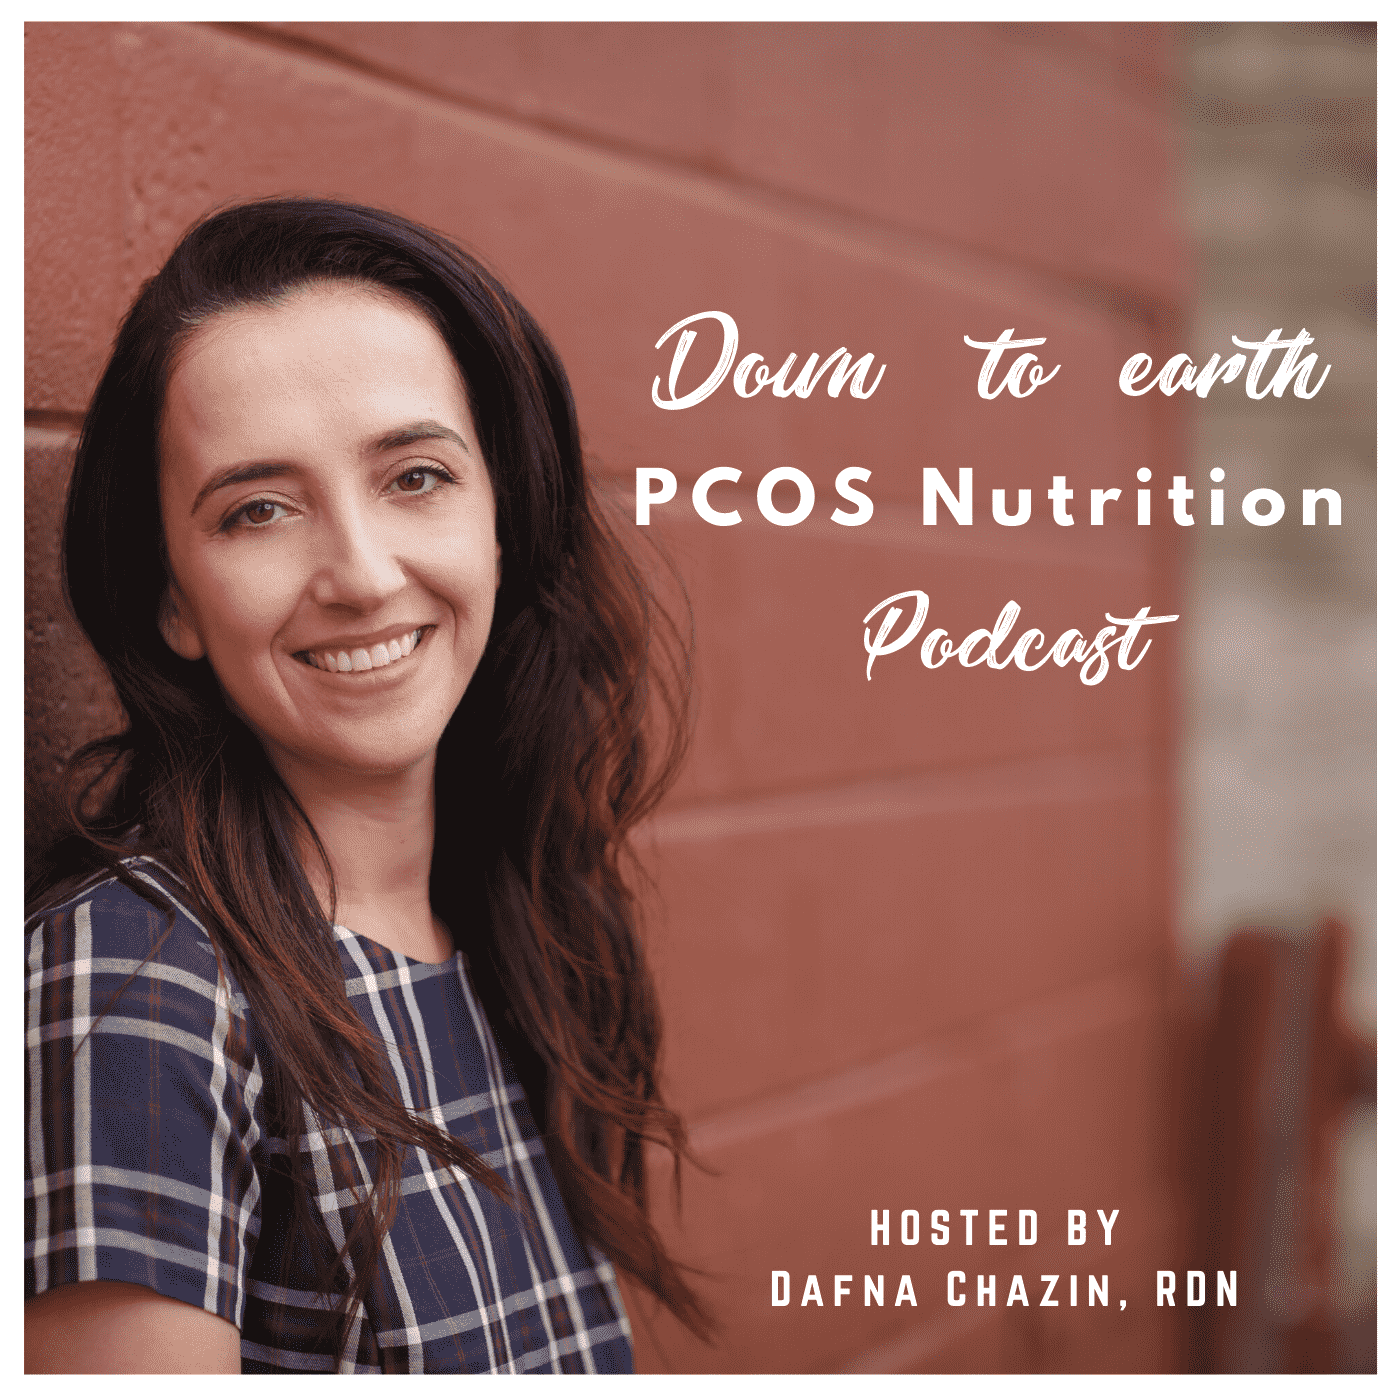 Down To Earth PCOS Nutrition Podcast show art